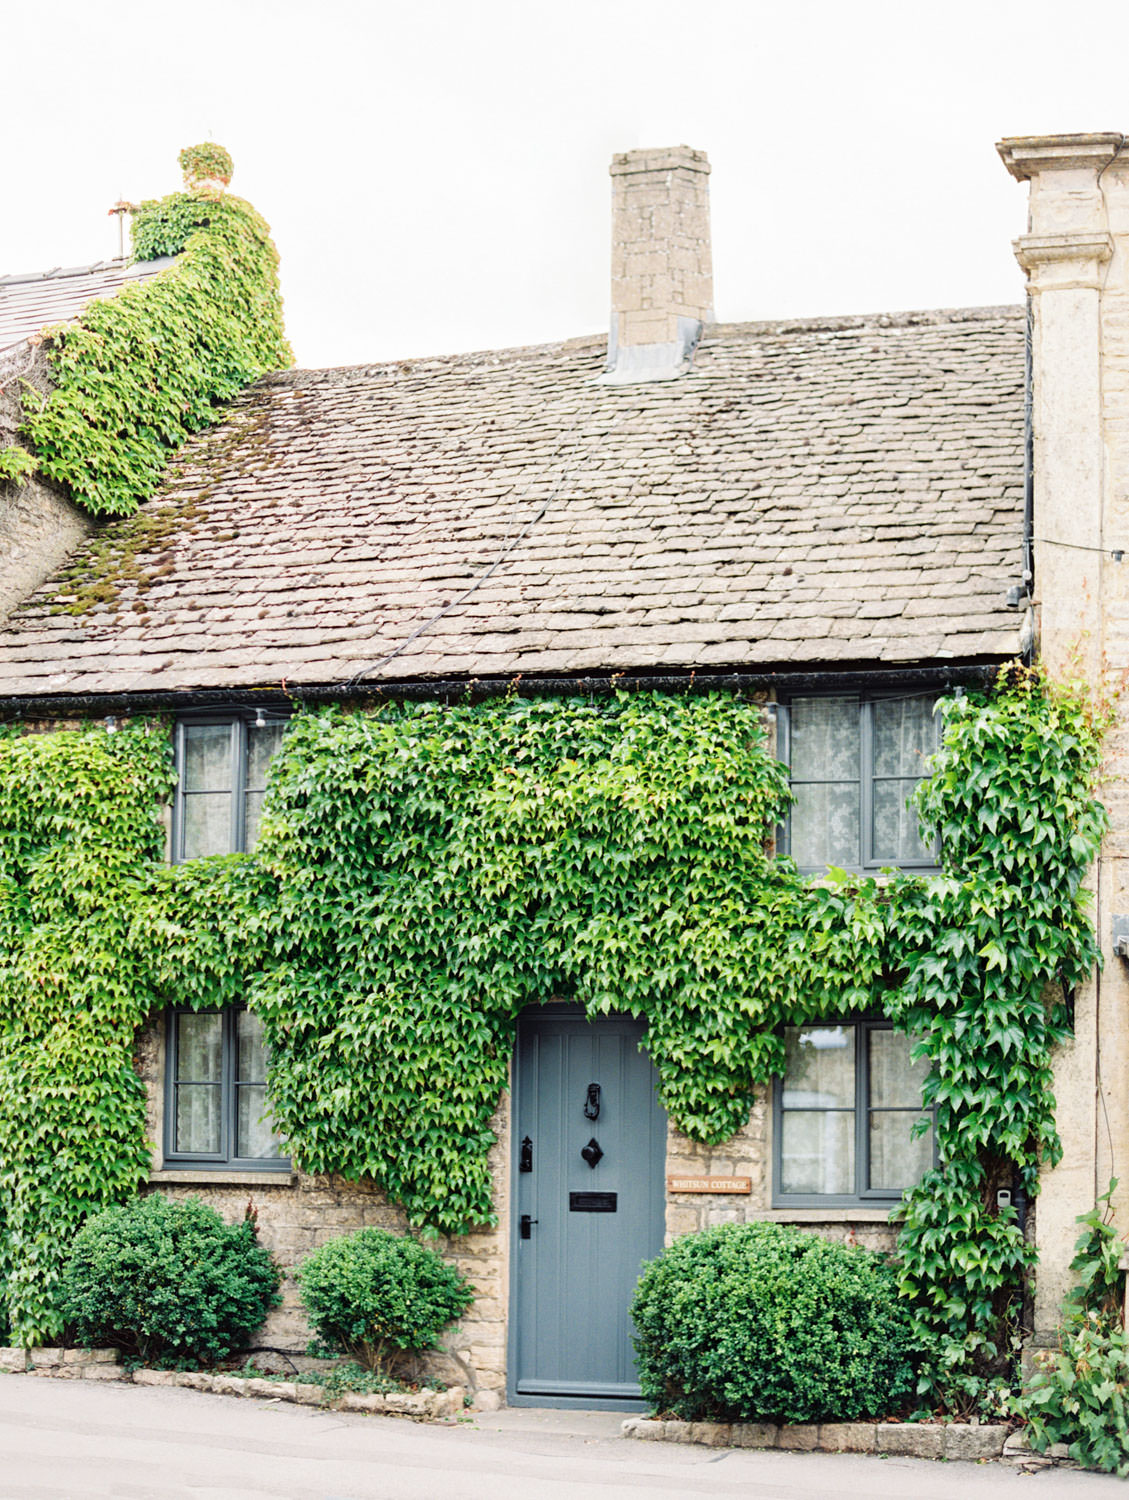 Stow-on-the-Wold village house with ivy and French blue door in the Cotswolds. Flutter Magazine Retreat in the Cotswolds, England. Photo by Cavin Elizabeth Photography on film